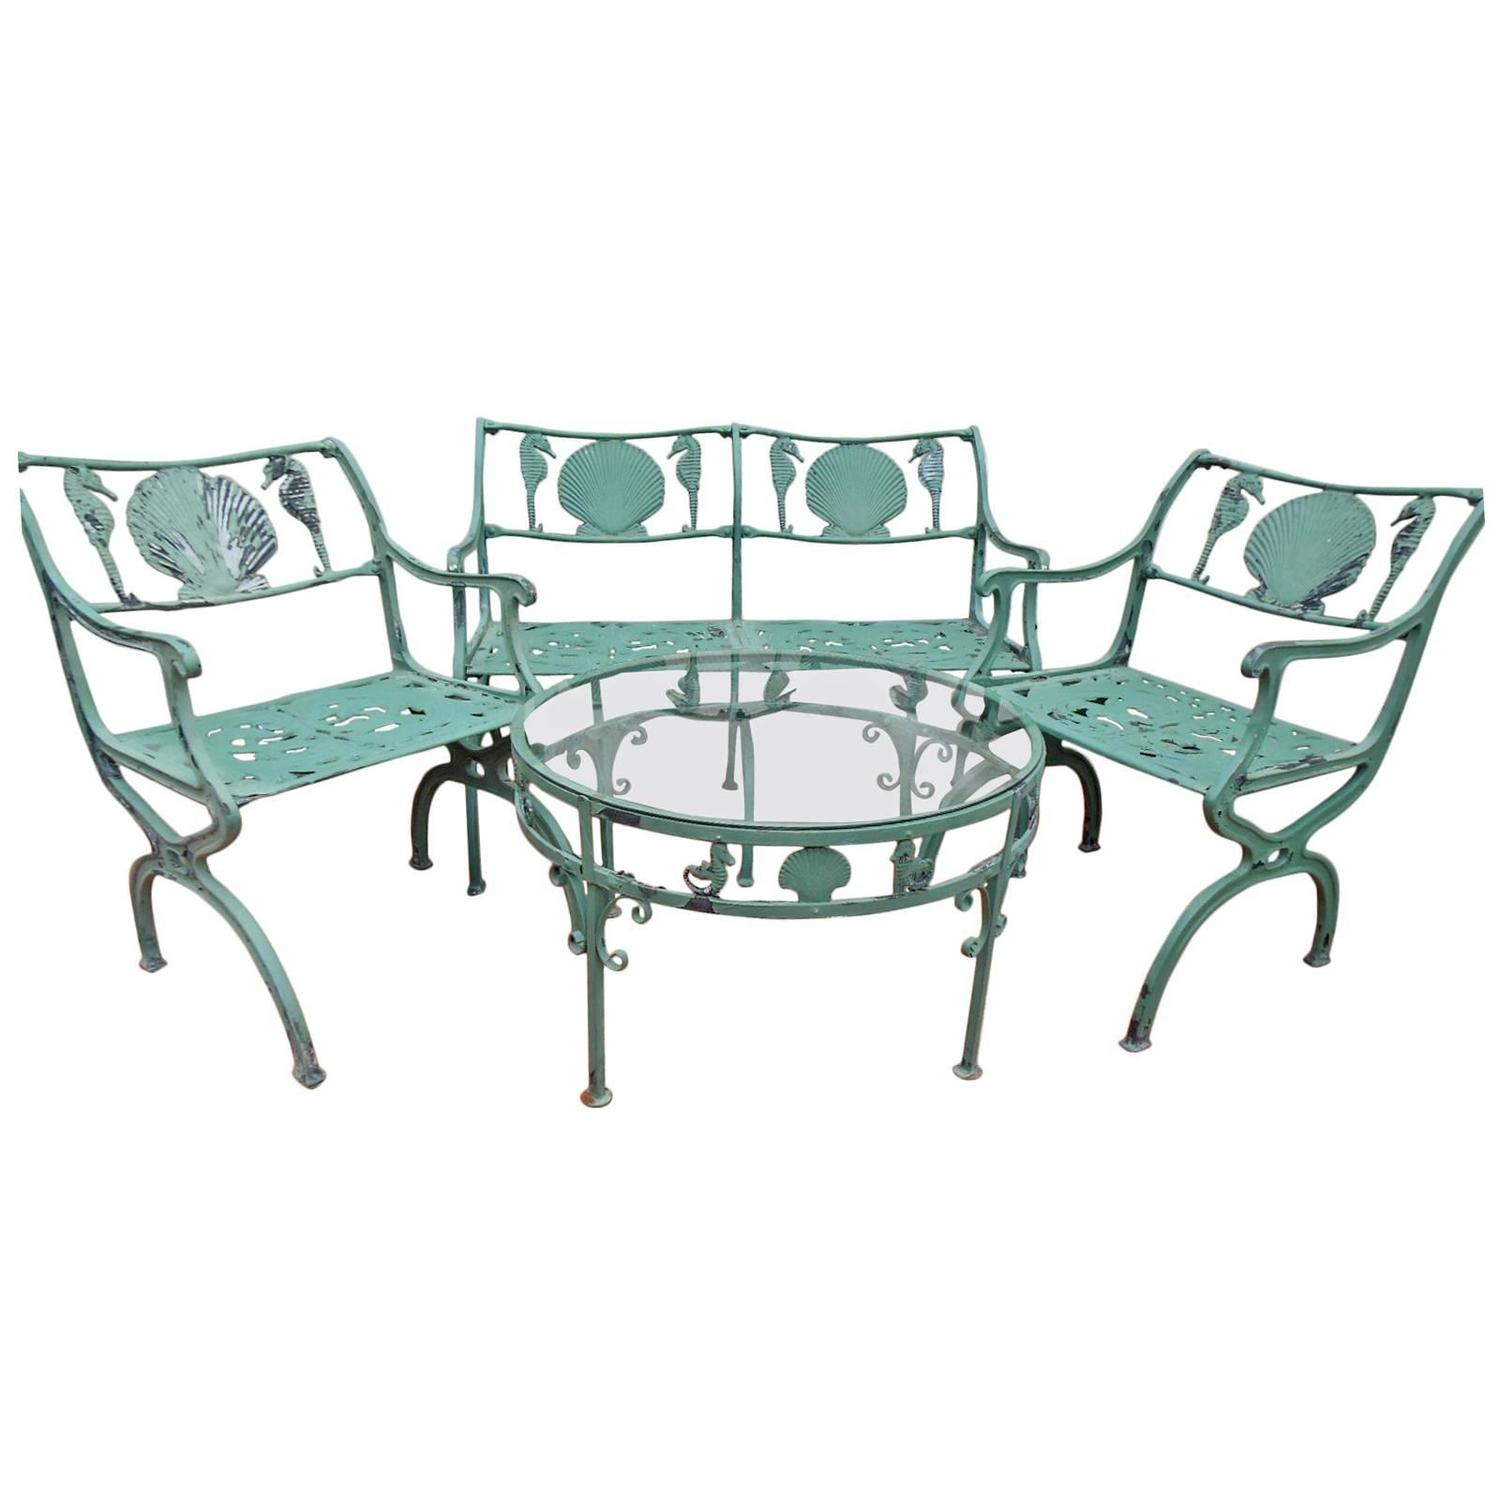 Molla Vintage Four Piece Patio Set For Sale At 1stdibs